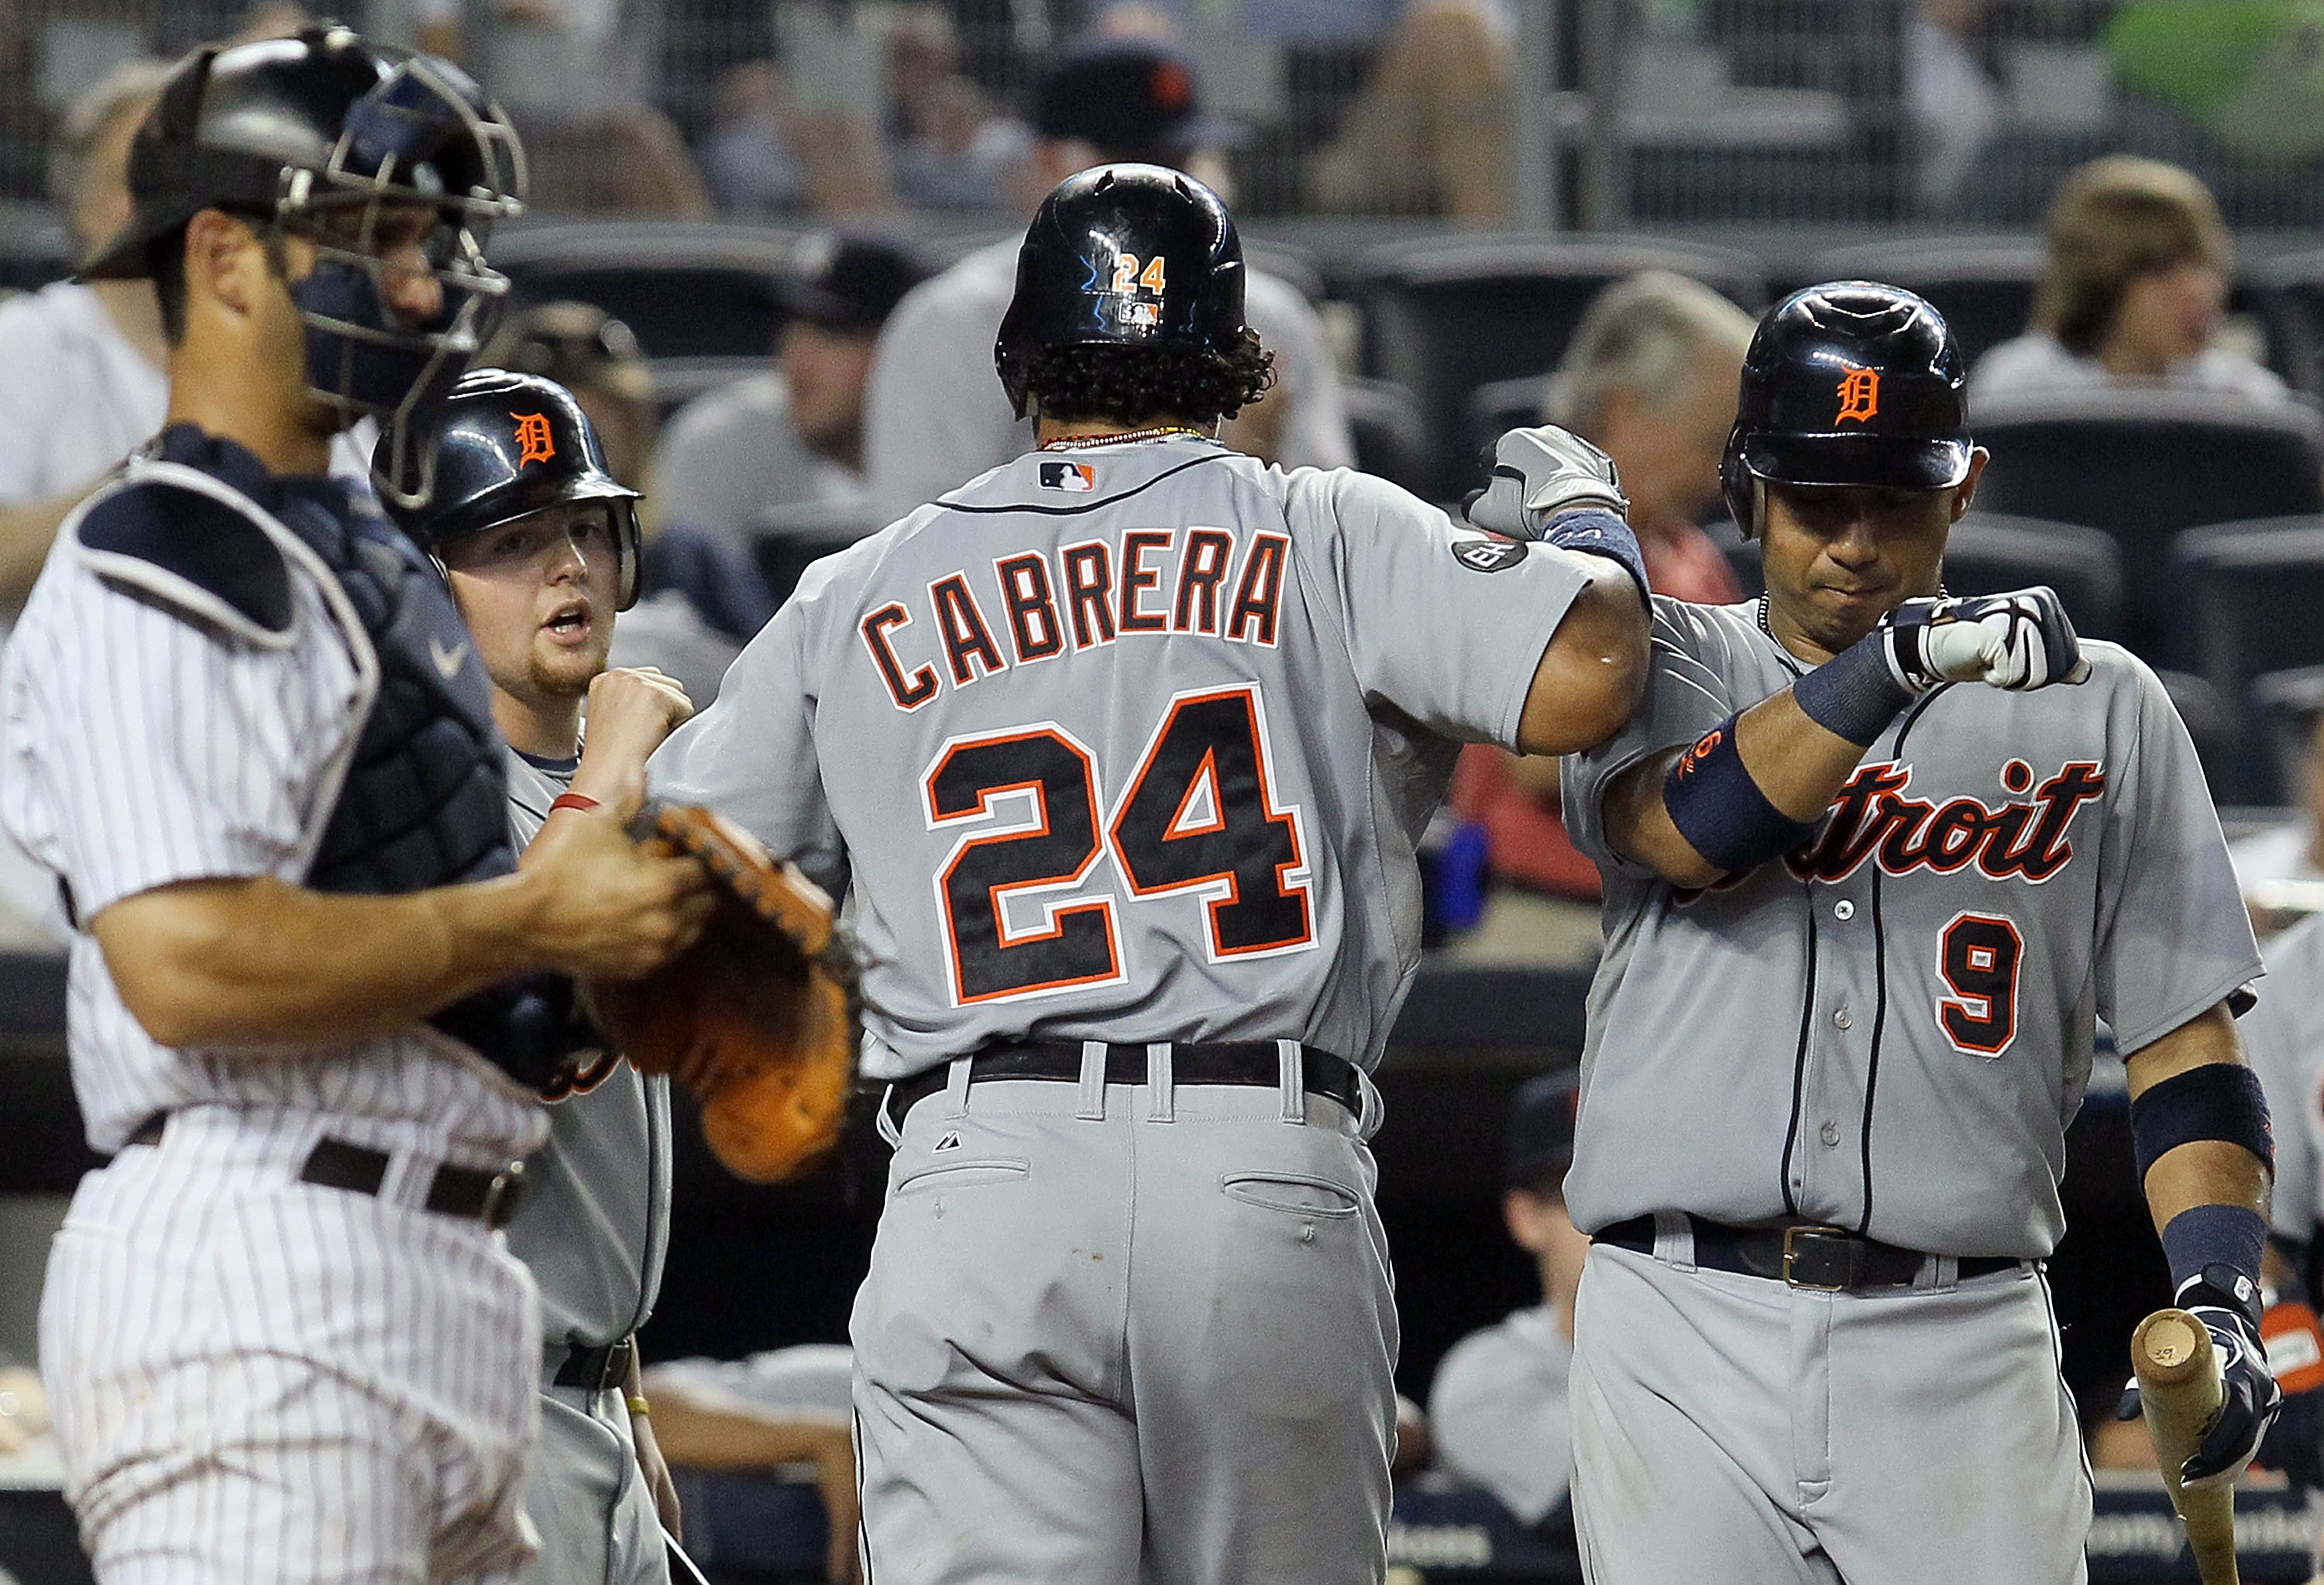 NEW YORK - AUGUST 16:  Miguel Cabrera #24 of the Detroit Tigers celebrates his ninth inning home run against the New York Yankees with teammate Carlos Guillen #9 on August 16, 2010 at Yankee Stadium in the Bronx borough of New York City. The Tigers defeat